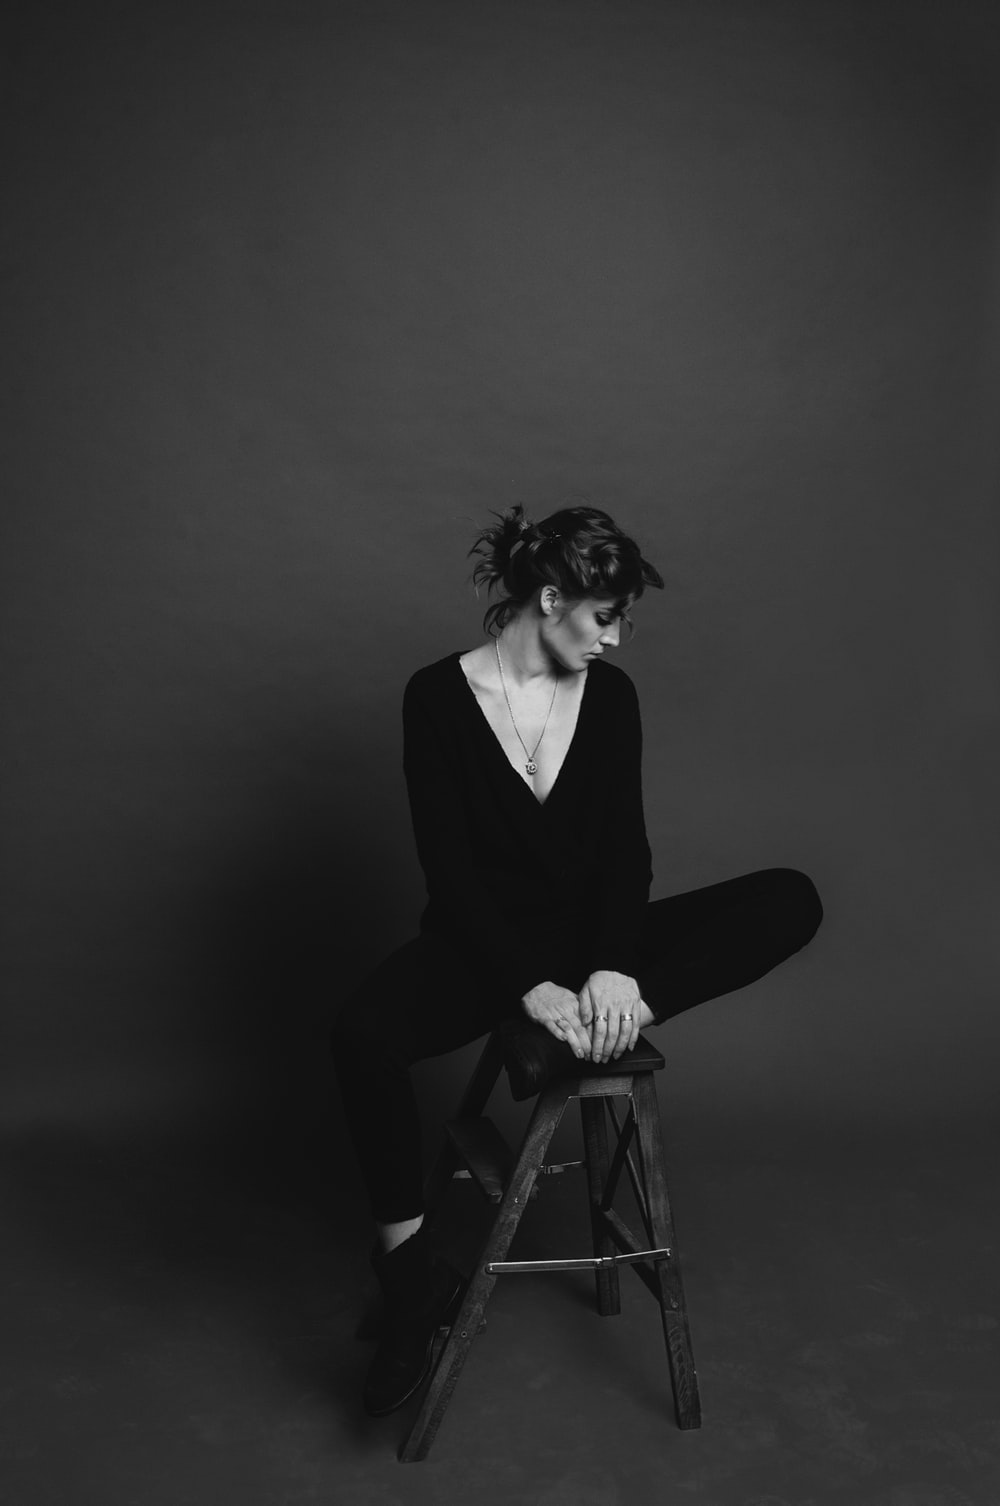 grayscale photo of woman sitting on stool